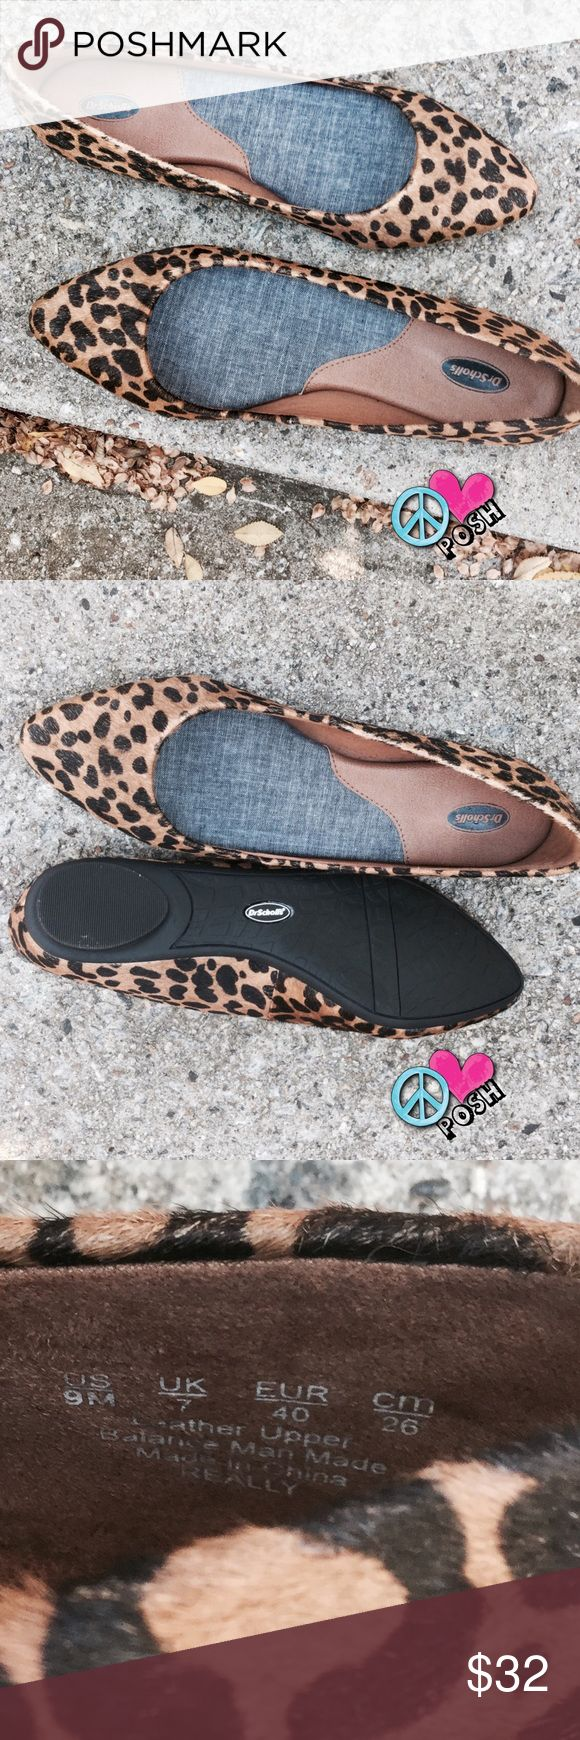 Dr. Scholl's LEATHER Cheetah Flats Dr. Scholl's Cheetah Flats FITS SIZE 8 BEST Extremely Comfy, 100% Leather Uppers & in A-1 Condition They're PERFECT ❌❌ NO TRADE ❌❌ Dr. Scholl's Shoes Flats & Loafers